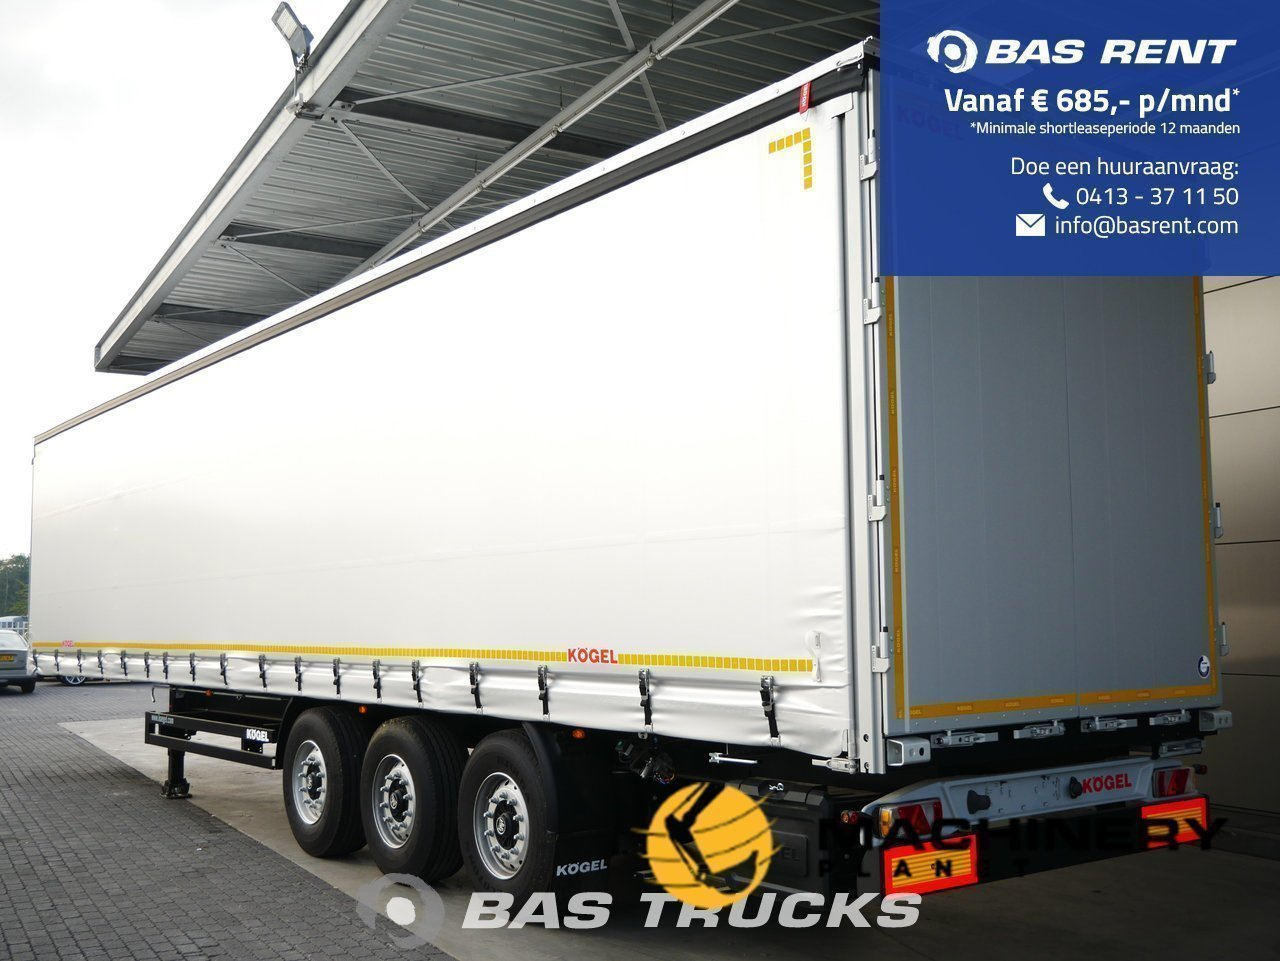 New-Semi-trailer-KOGEL-Liftachse-S24-1-Axels_148385_1-1554198147348_5ca32e8354ff8-1.jpg